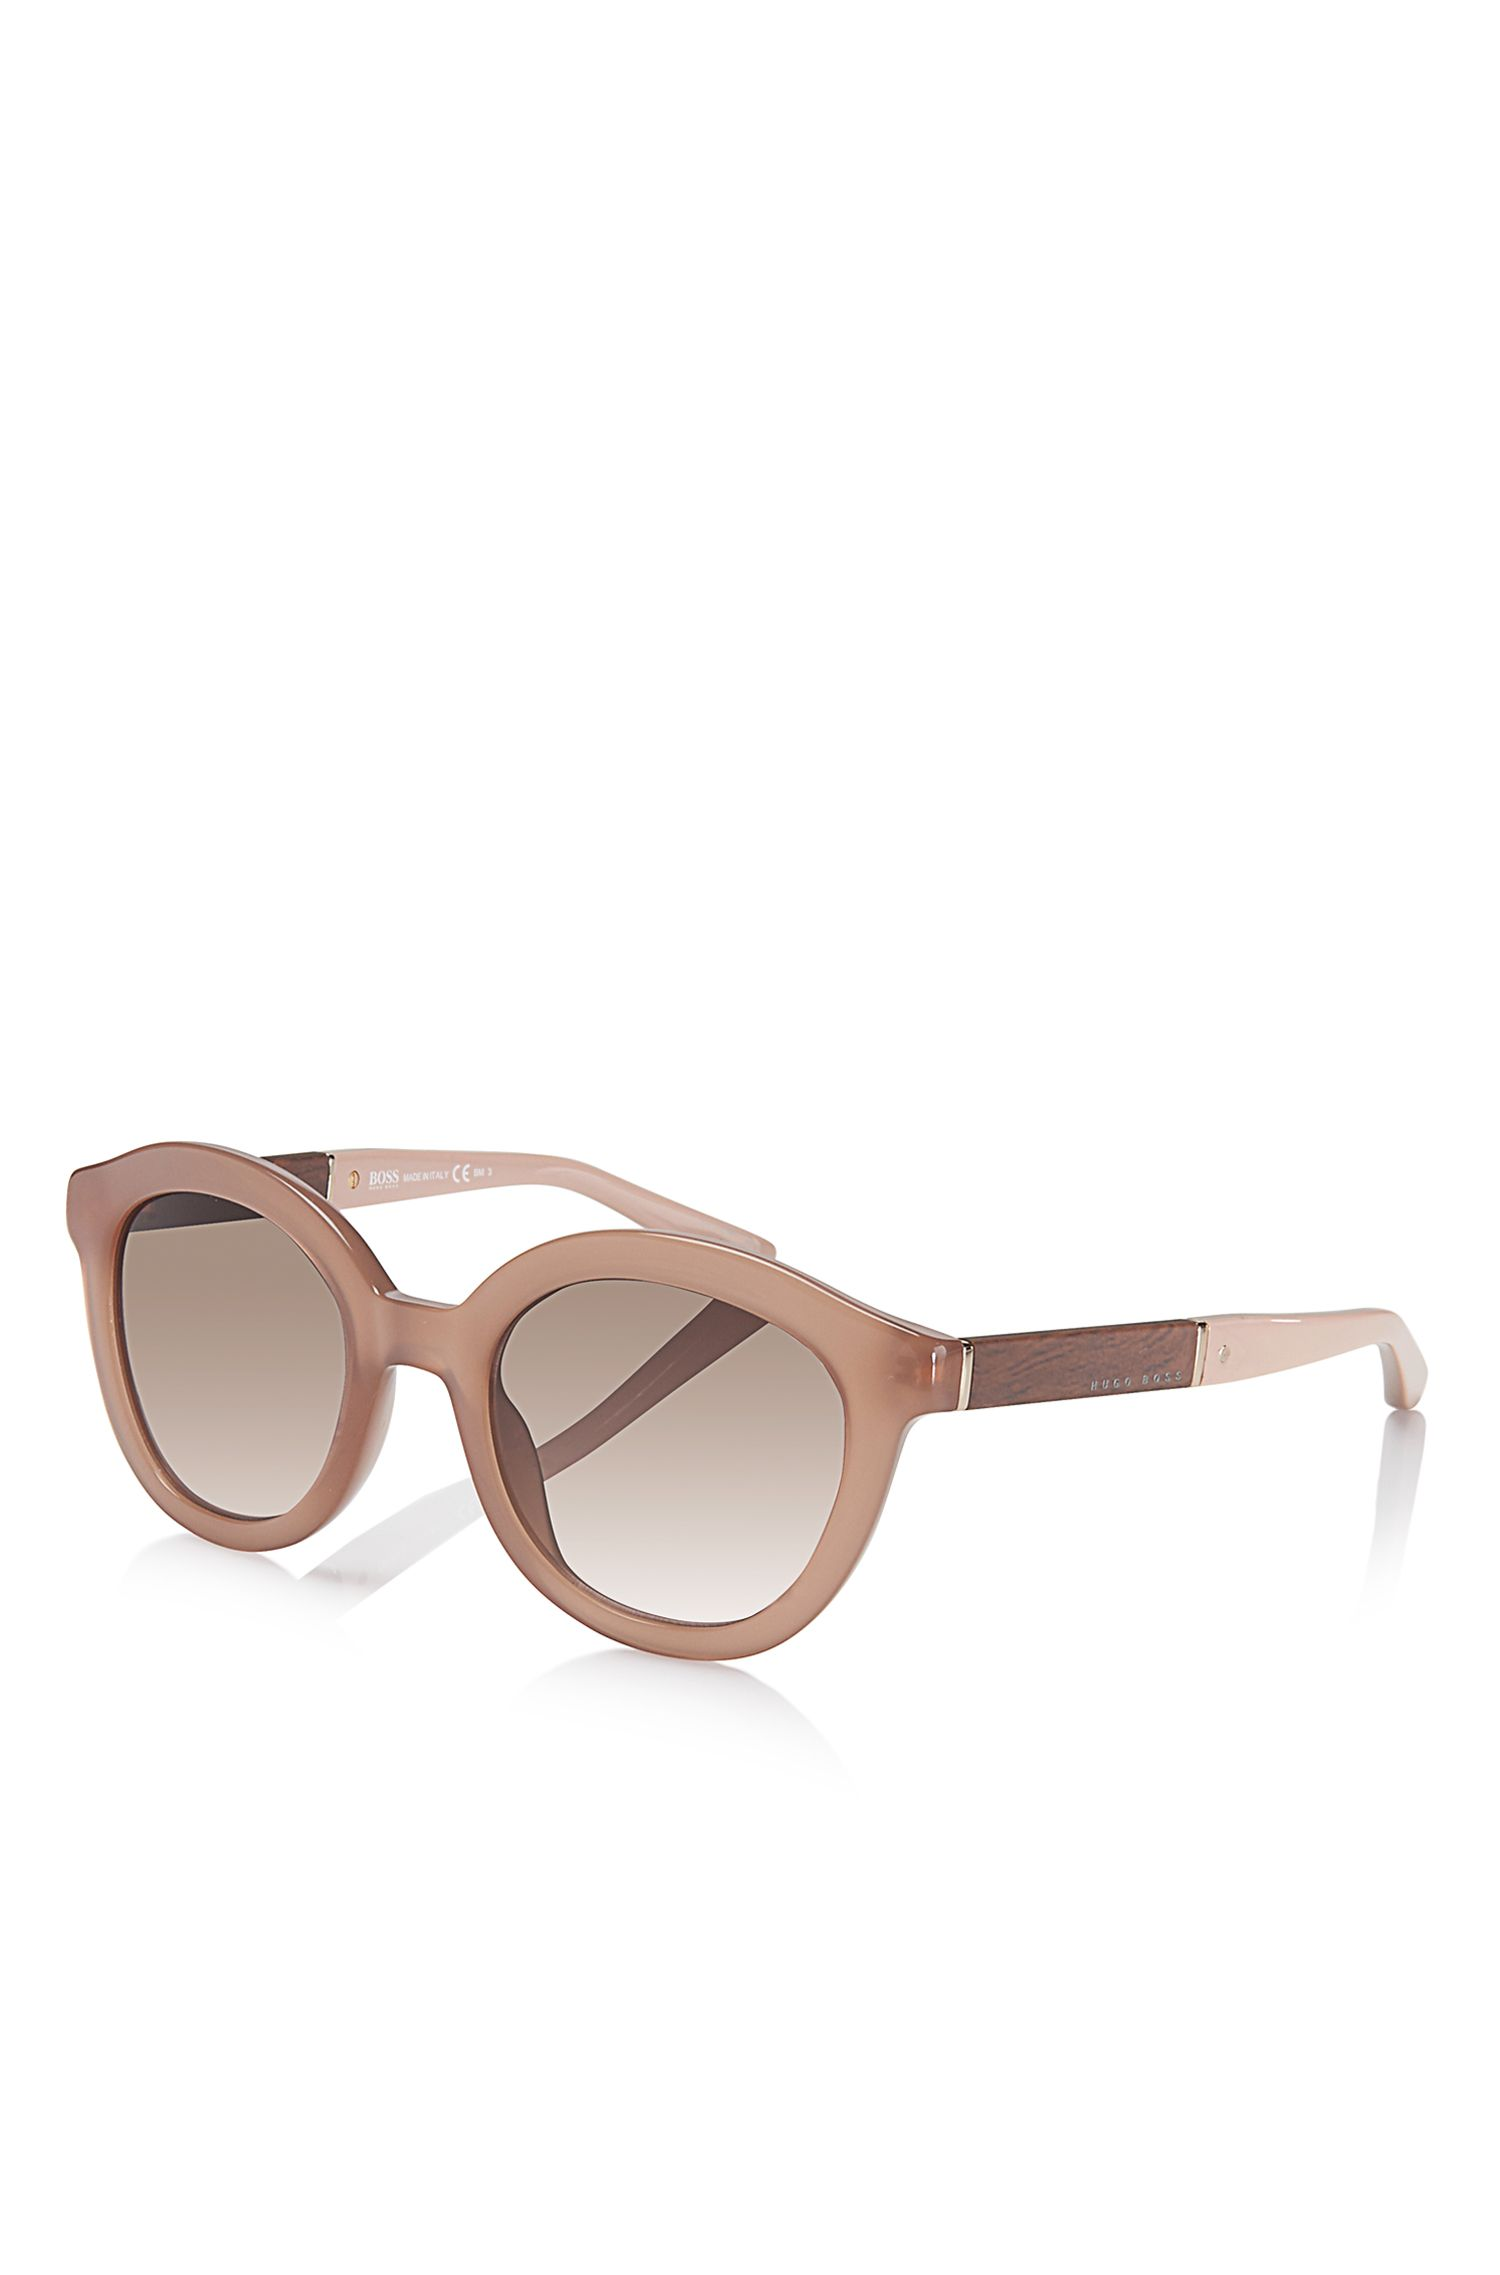 Rounded Vintage Wood Detailed Sunglasses  | BOSS 0662S